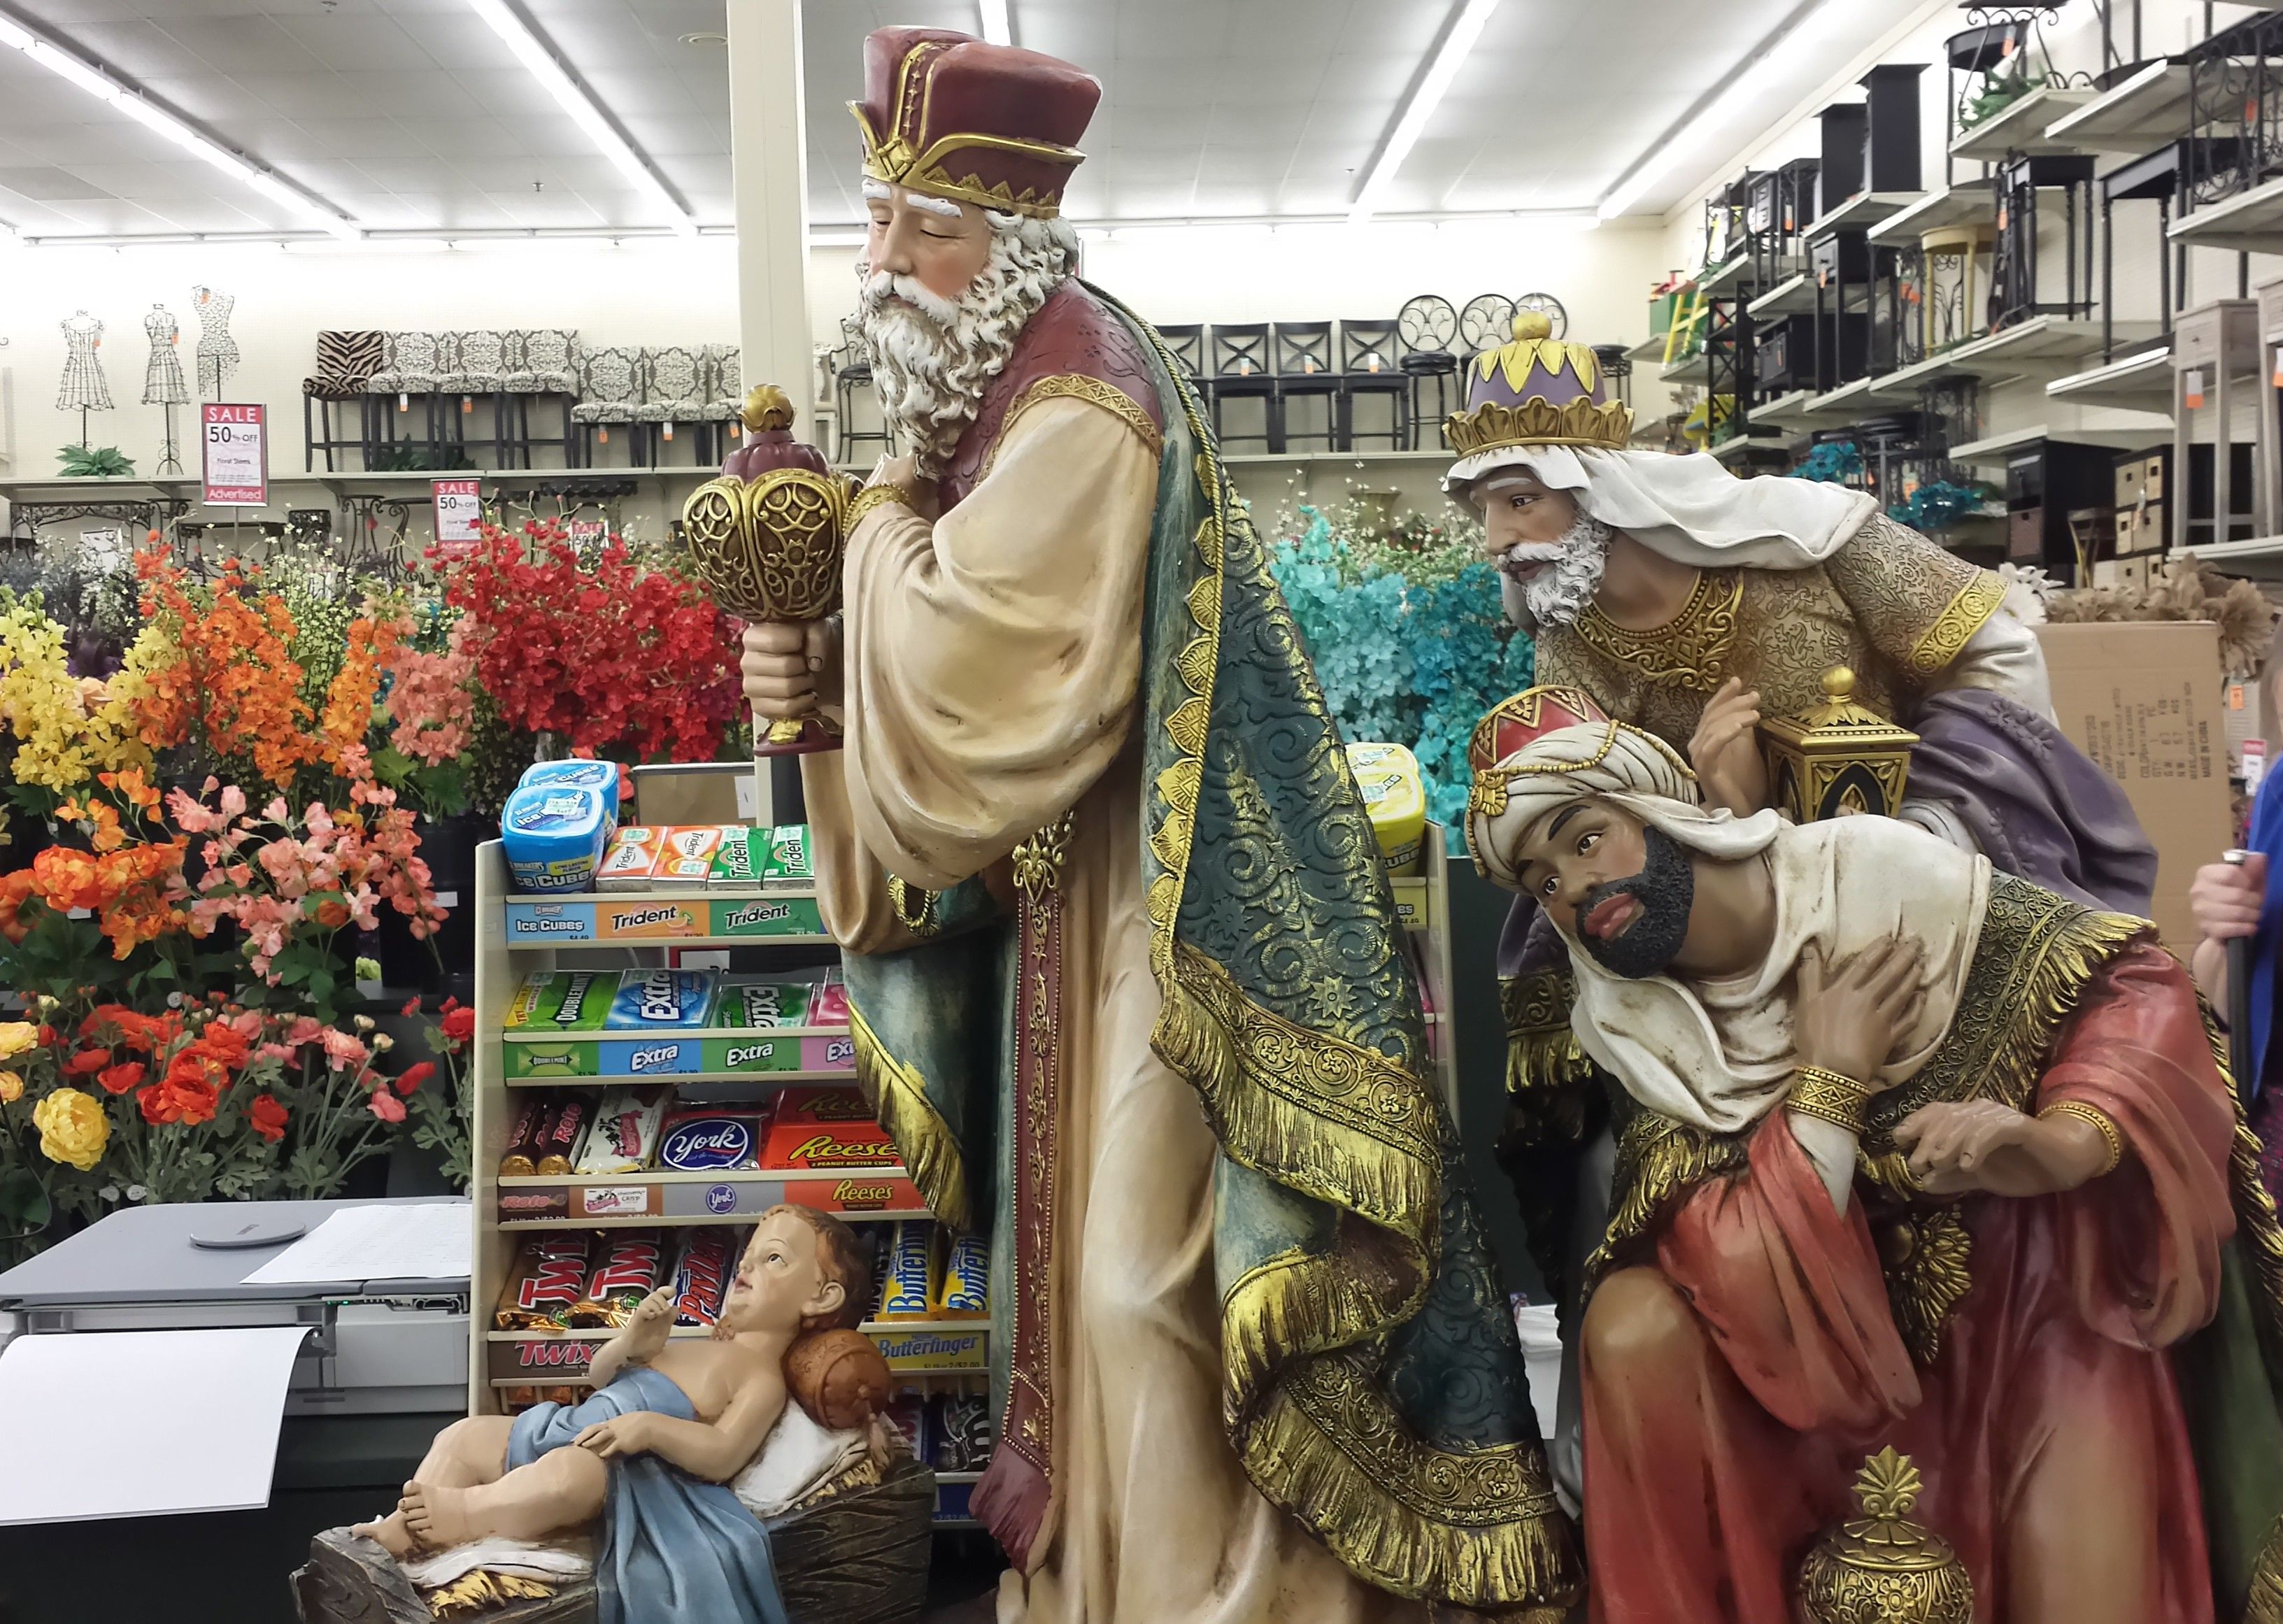 Larger Scale Of The Nativity Scene We Have Saw It At Hobby Lobby Dec 2014 Outdoor Nativity Scene Outdoor Nativity Nativity Scene